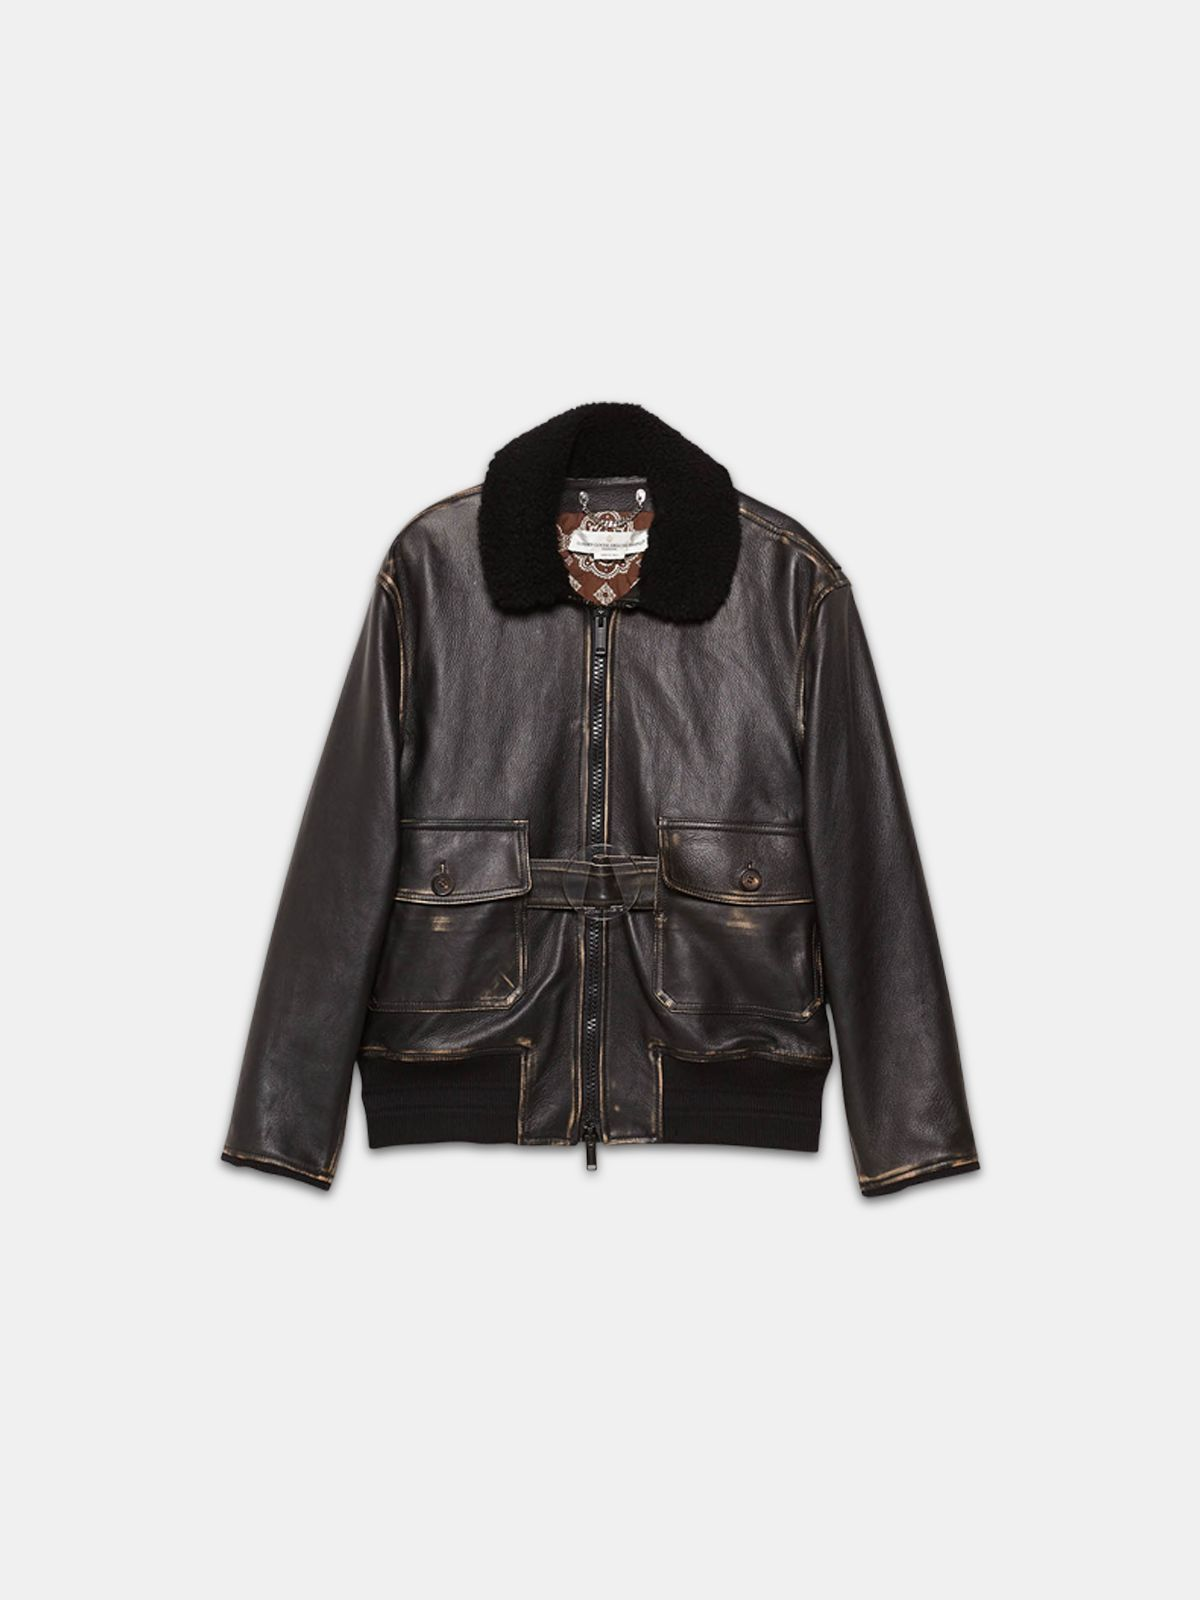 Golden Goose - Erika bomber jacket in vintage-look nappa leather in